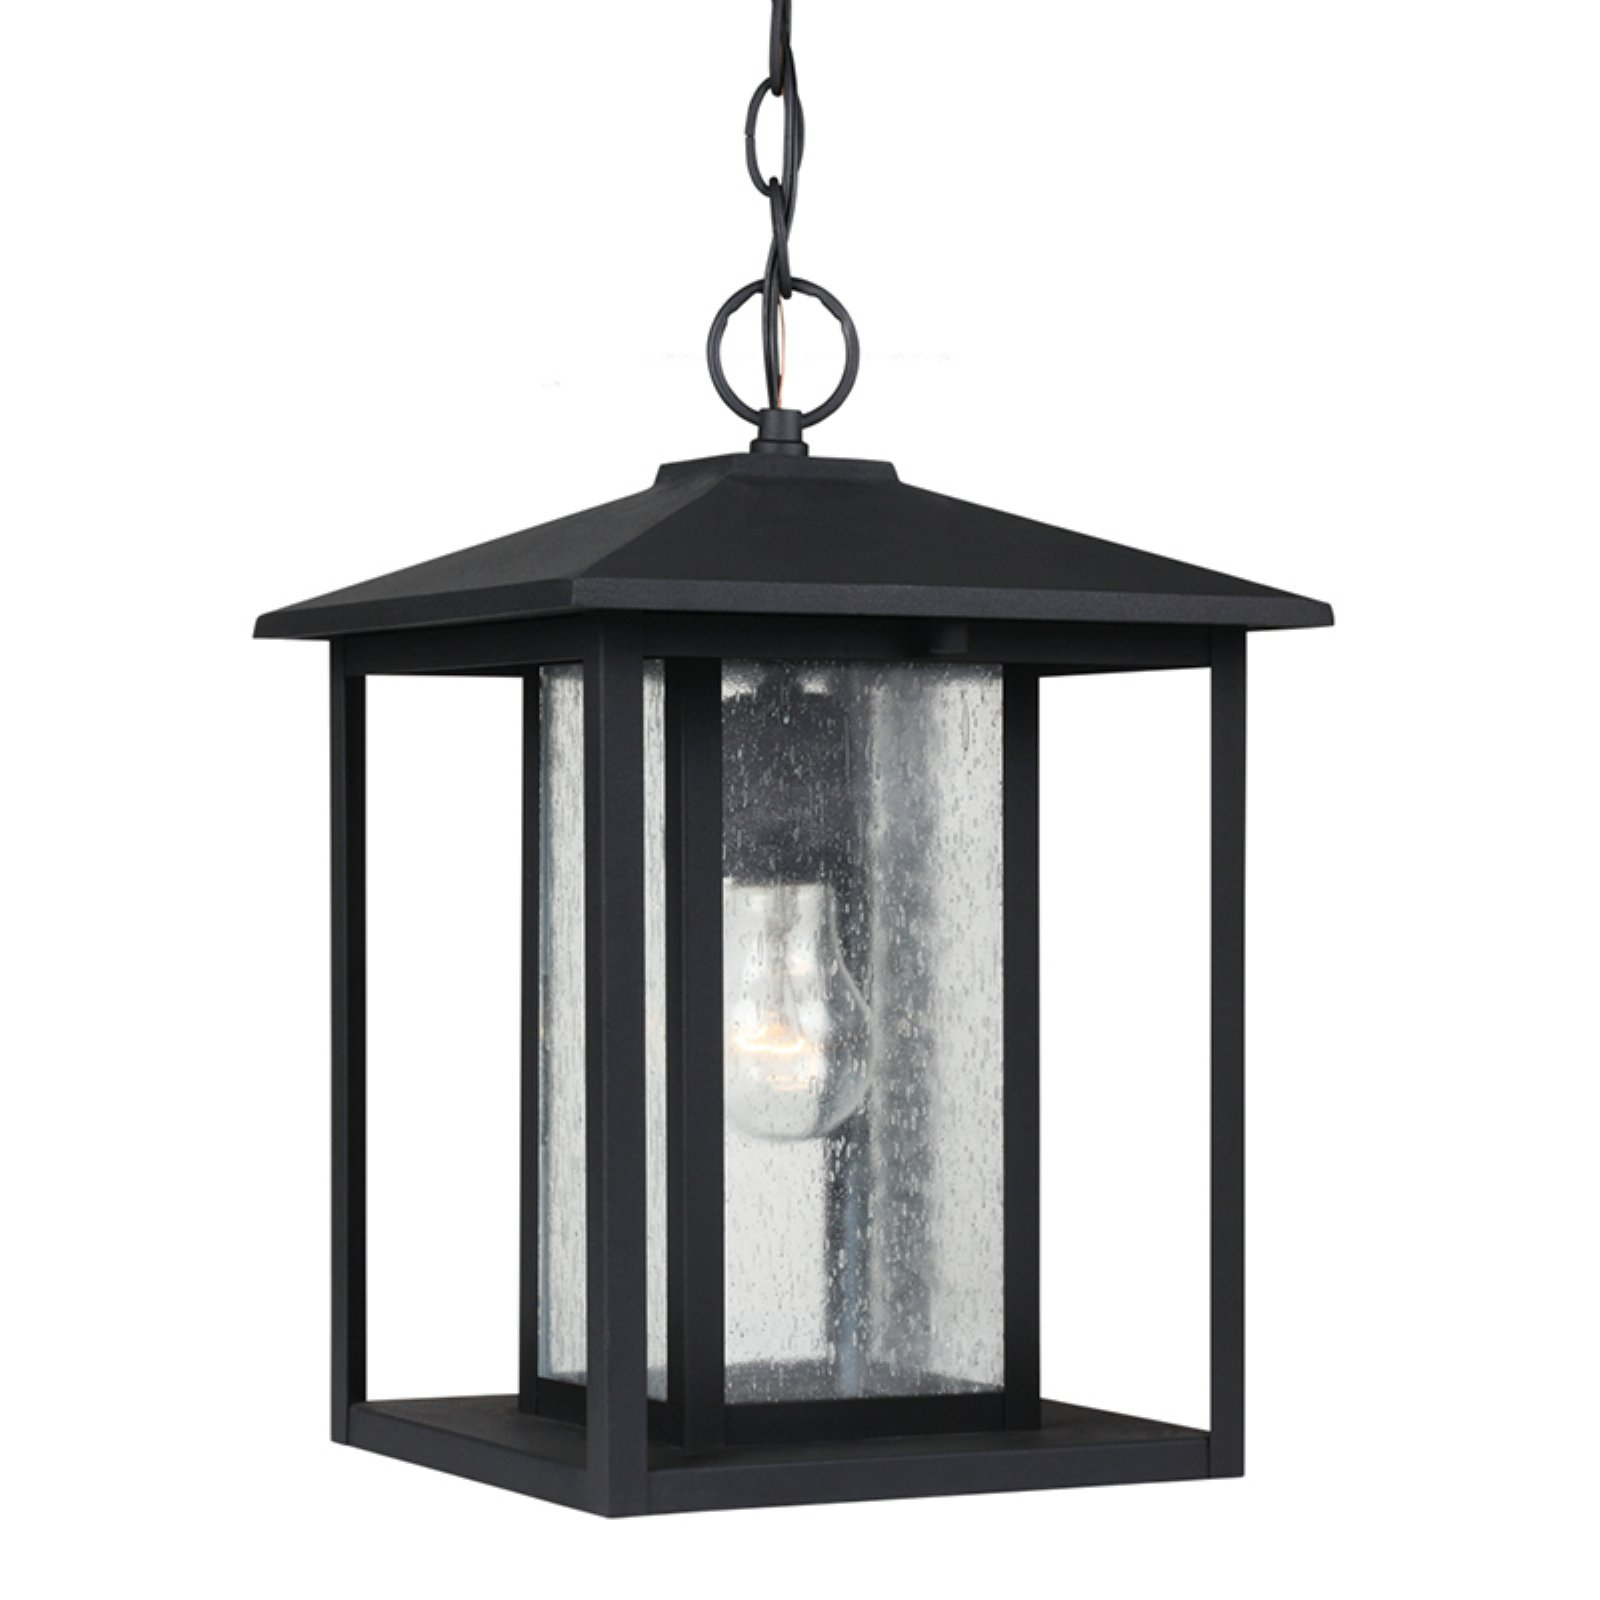 Sea Gull Lighting Hunnington 1-Light Outdoor Pendant - 13.75H in. Black